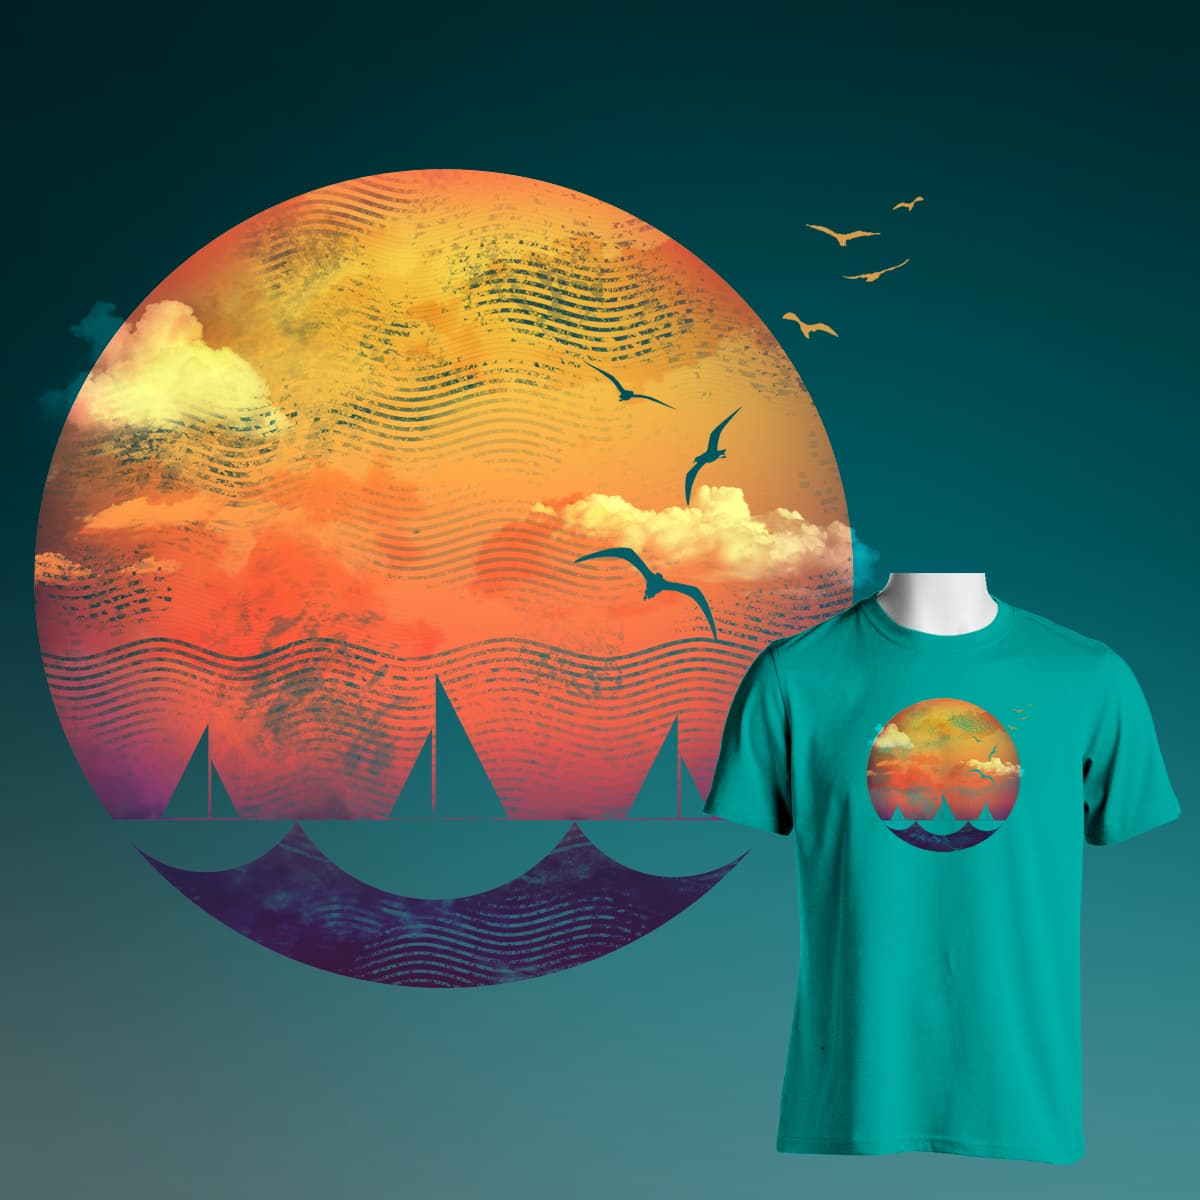 SAILING INTO THE SUNSET by masterpiece.ison on Threadless